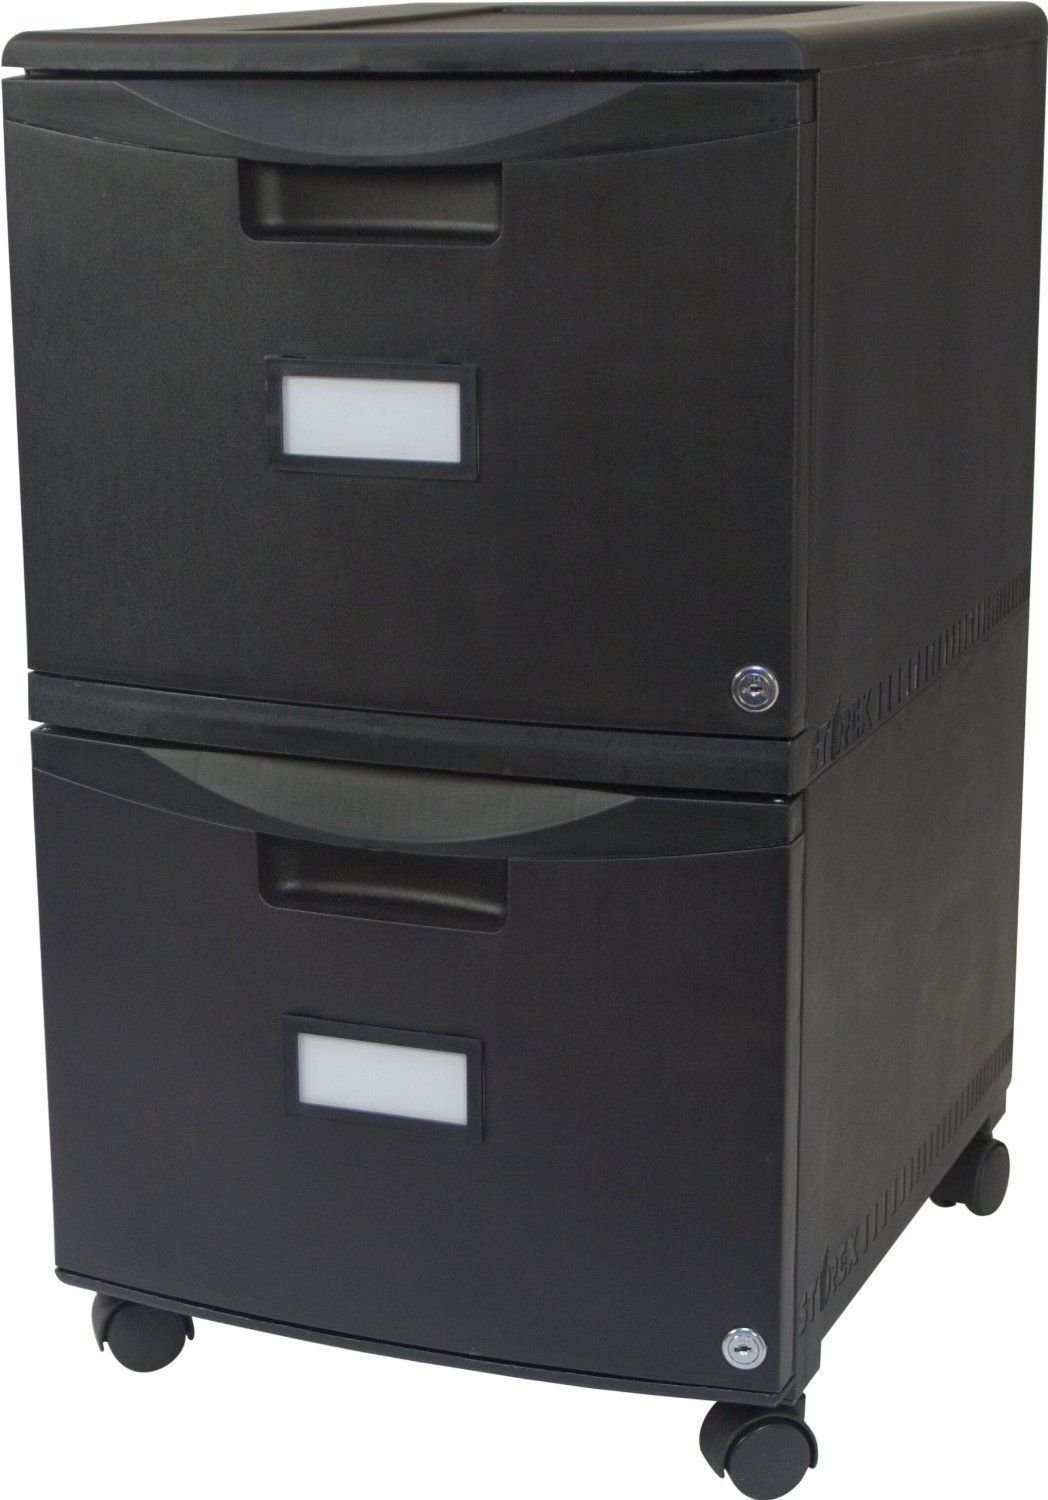 2 Drawer Mobile Filing Cabinet With Lock Letter Legal Size Filing Cabinet Mobile File Cabinet Office Supplies Logo